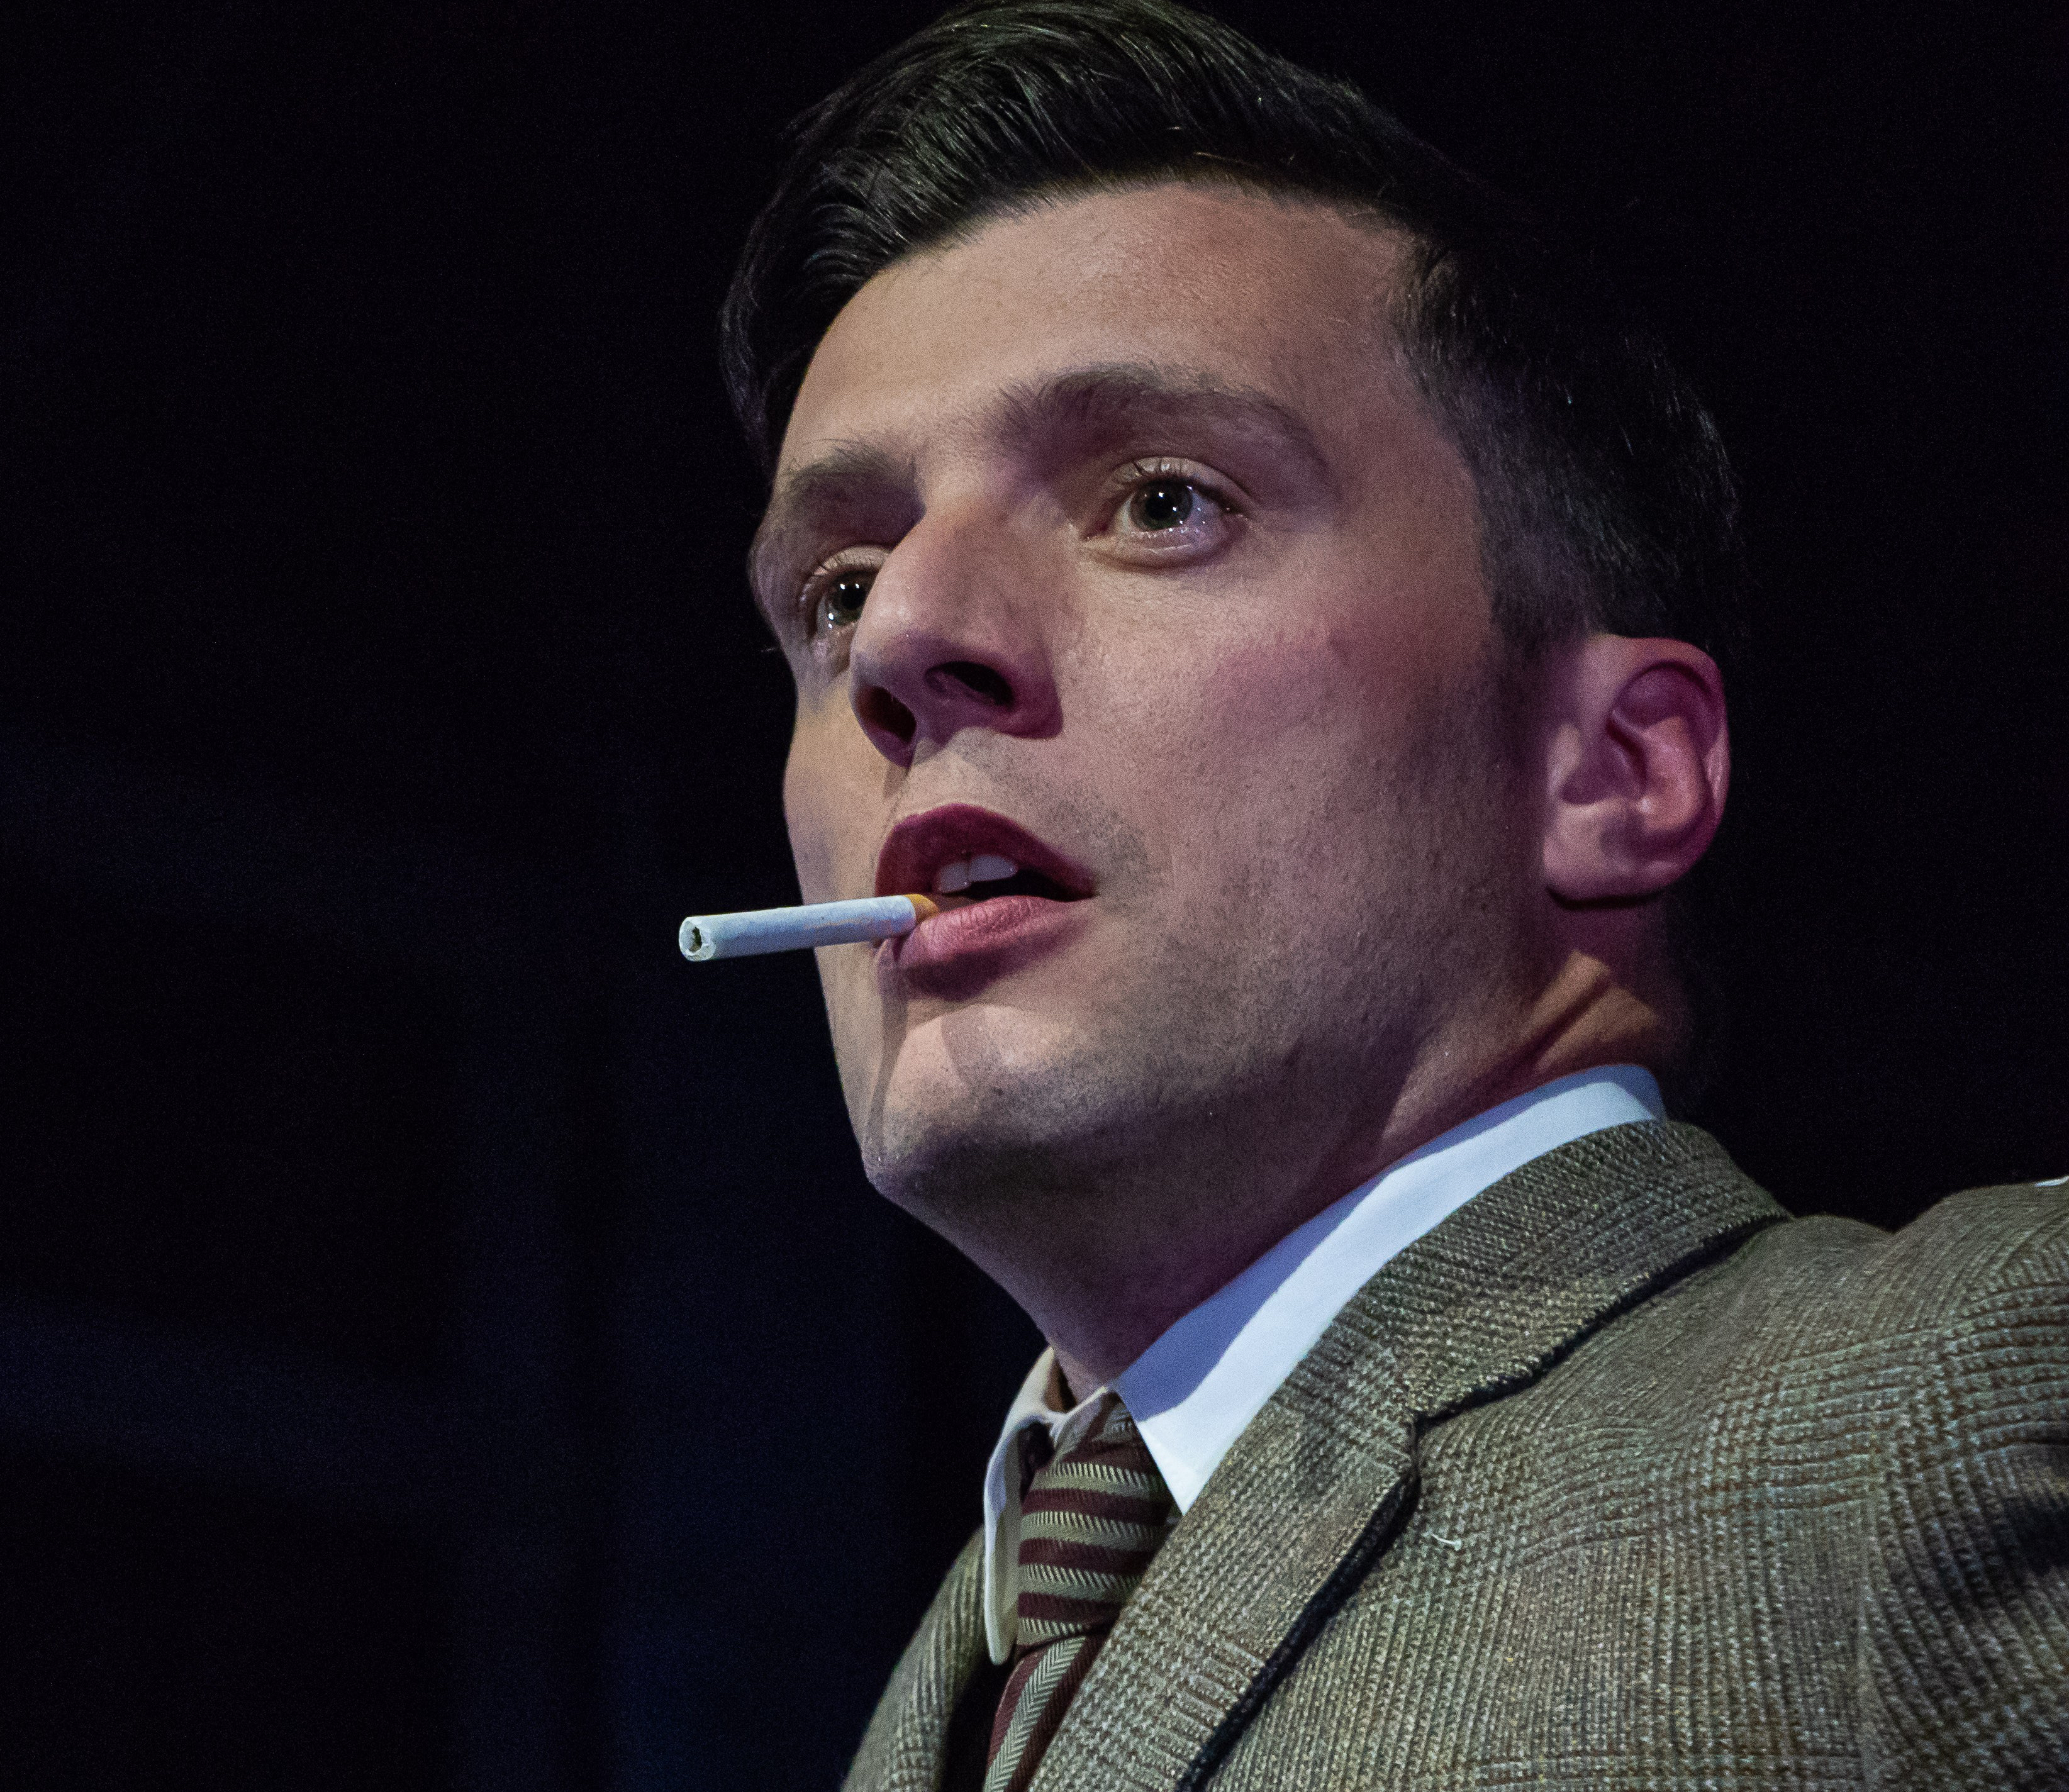 Jamie Brown as Jack Ford - When The Boat Comes In